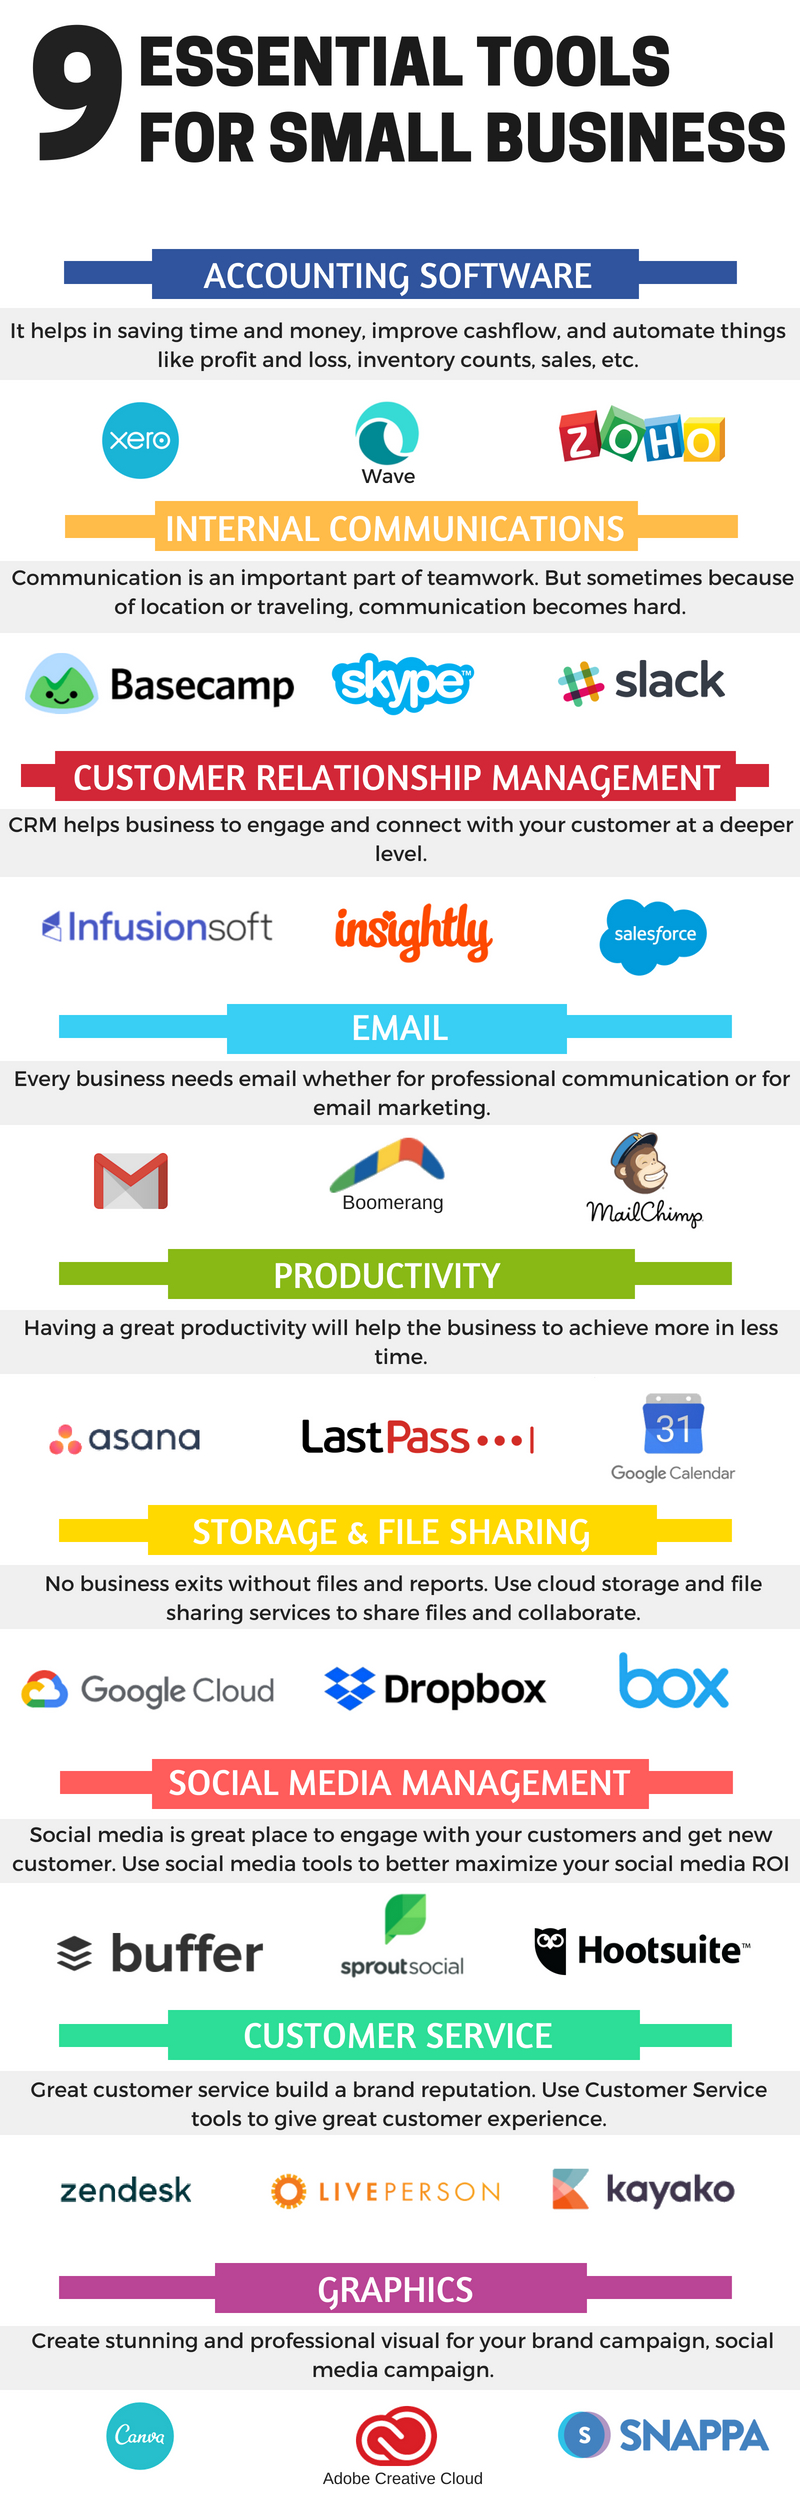 Infographic on essential tools for small business